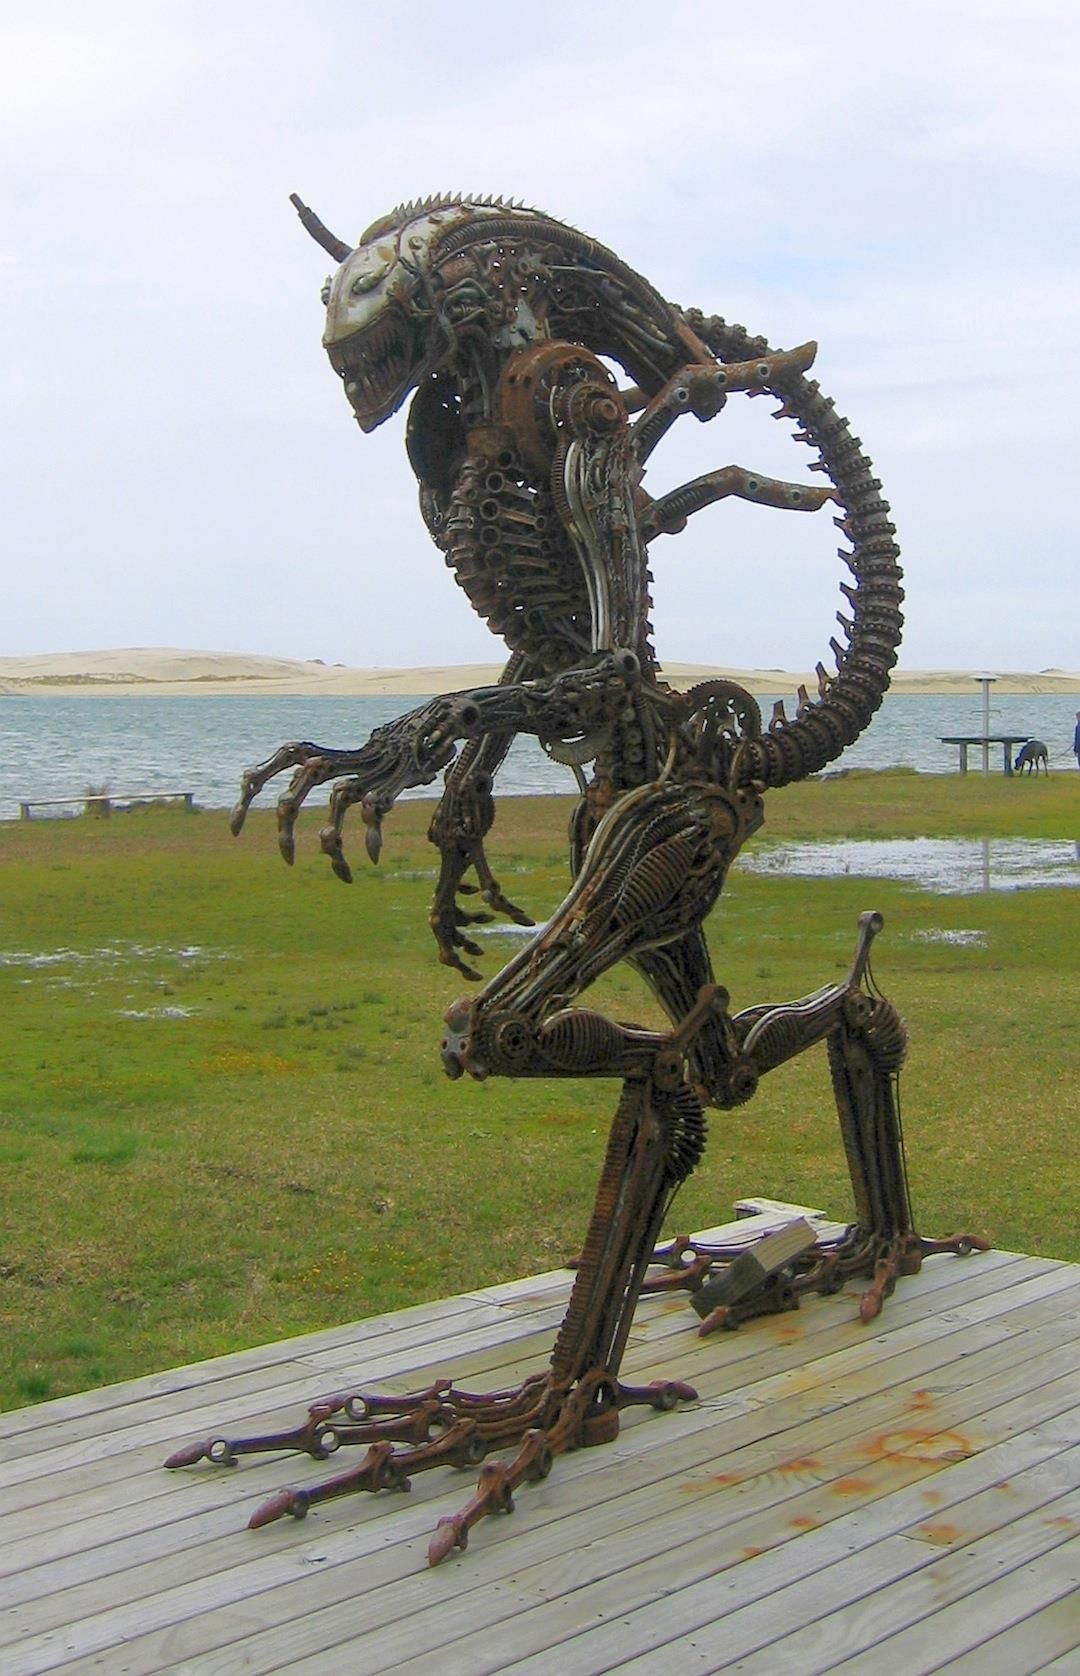 Sculpture from recycled metal.  Now this is putting art to good use.